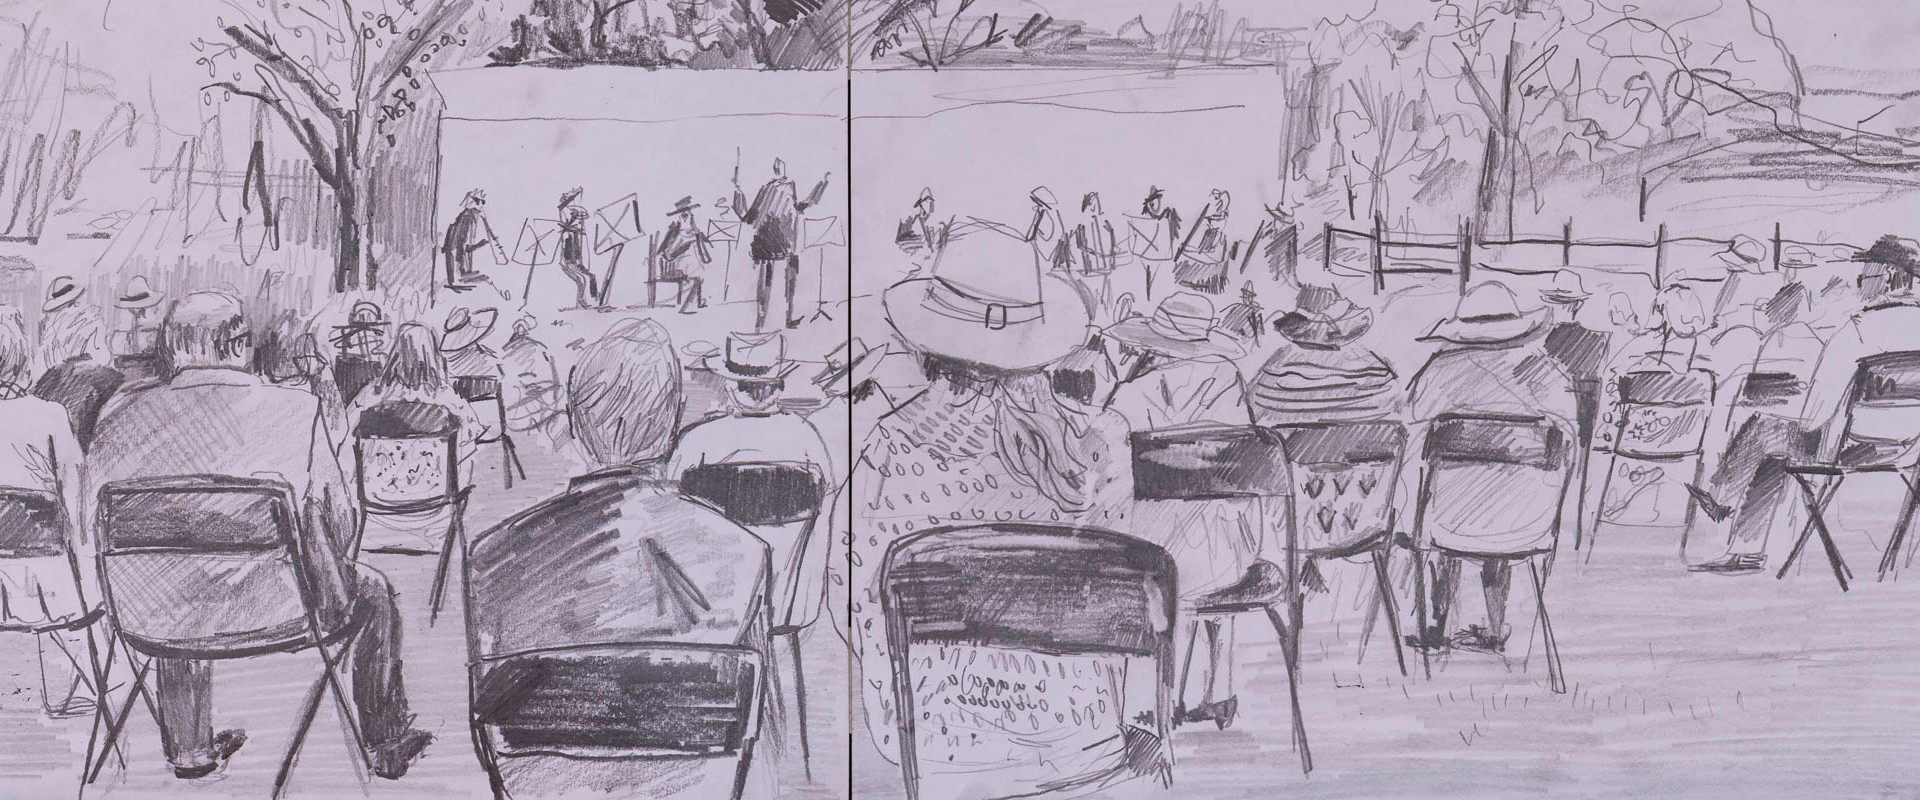 """""""Socially Distanced Ruperts Wearing Panama Hats"""" (a sketch from the outdoor concert)"""